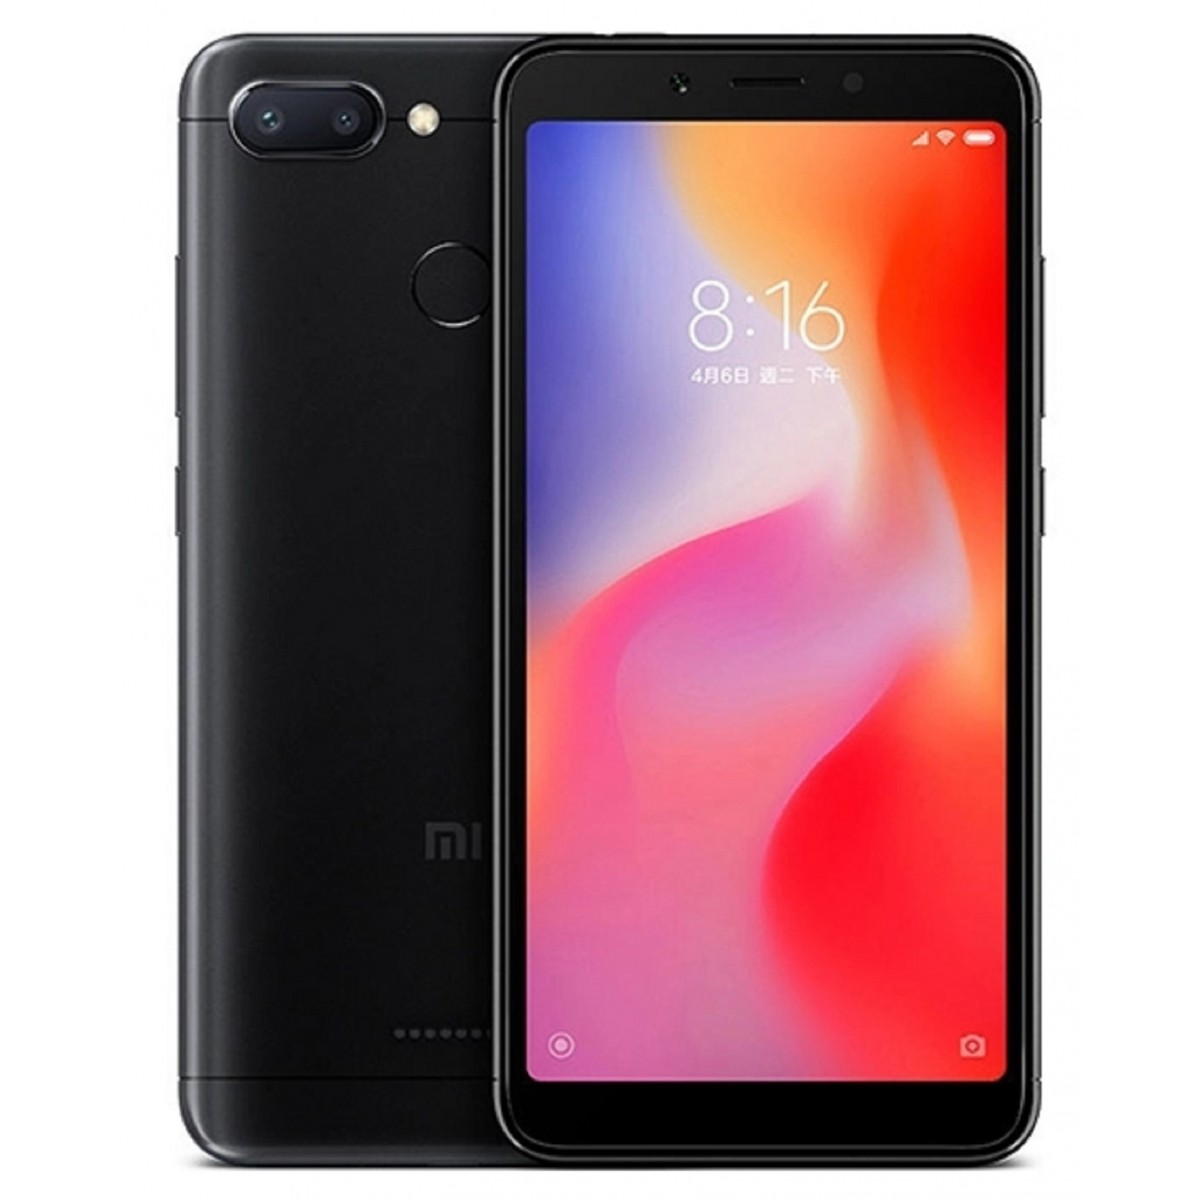 Image of Xiaomi Redmi 6 4GB/ 64GB Dual Sim SIM FREE/ UNLOCKED - Black